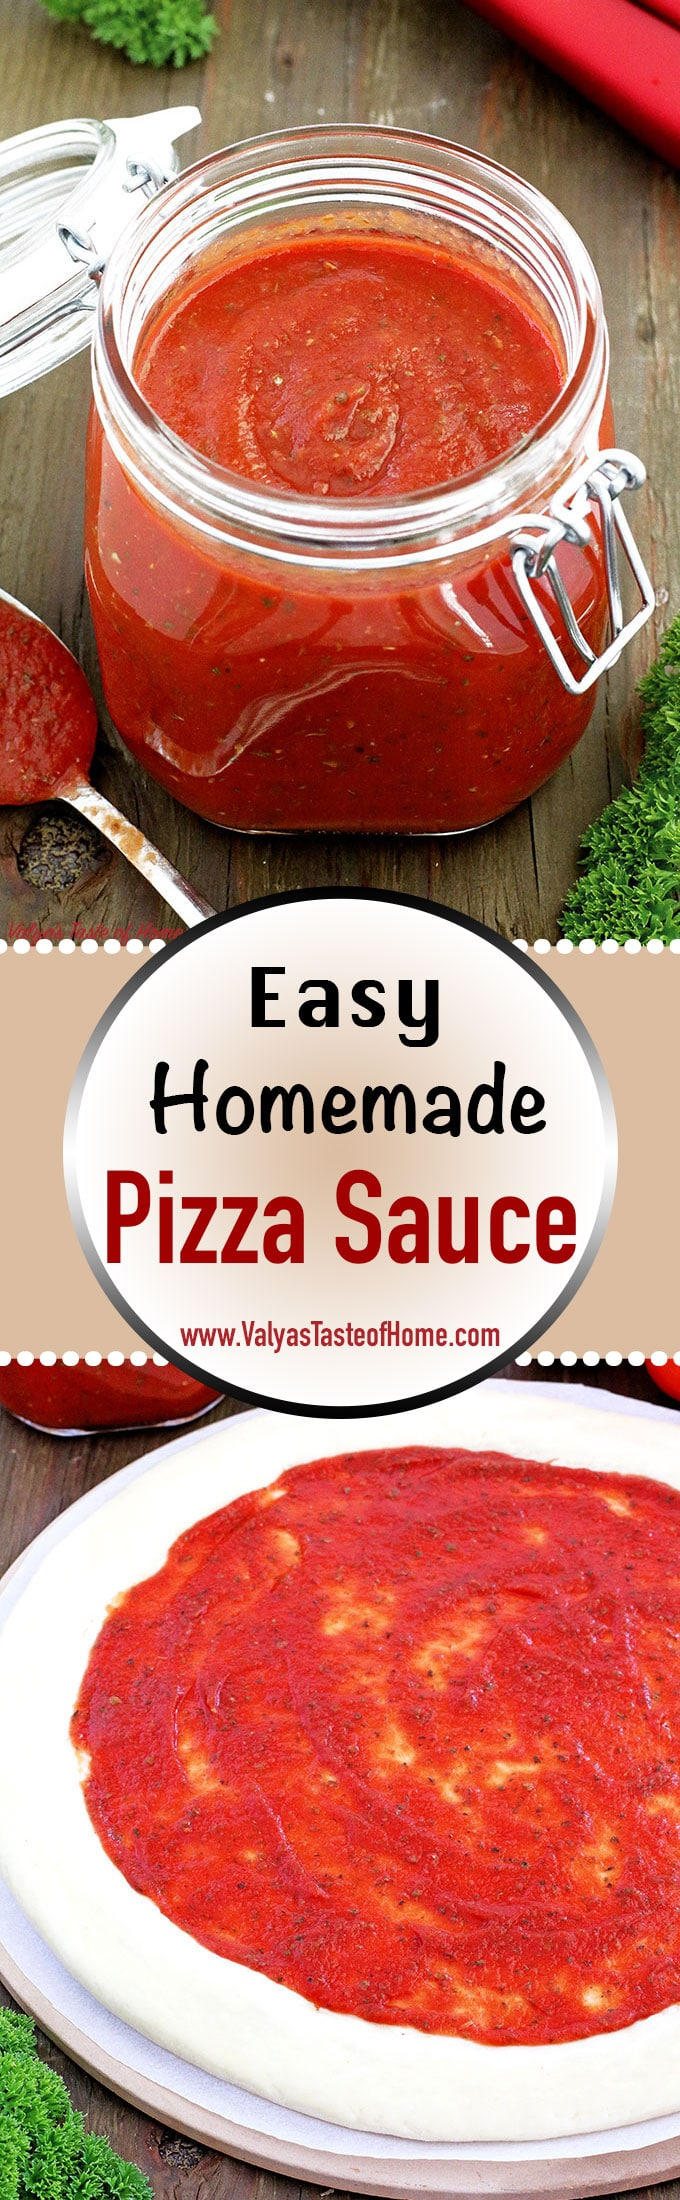 2 minute recipe, 4 ingredients pizza sauce, clean eating, delicious, easy, Easy Homemade Pizza Sauce Recipe, garlic powder, healthy eating, homemade pizza sauce, homemade tastes best, organic Italian seasoning, organic tomato sauce, pizza sauce, quick and easy recipe, sea salt, so flavorful, tasty